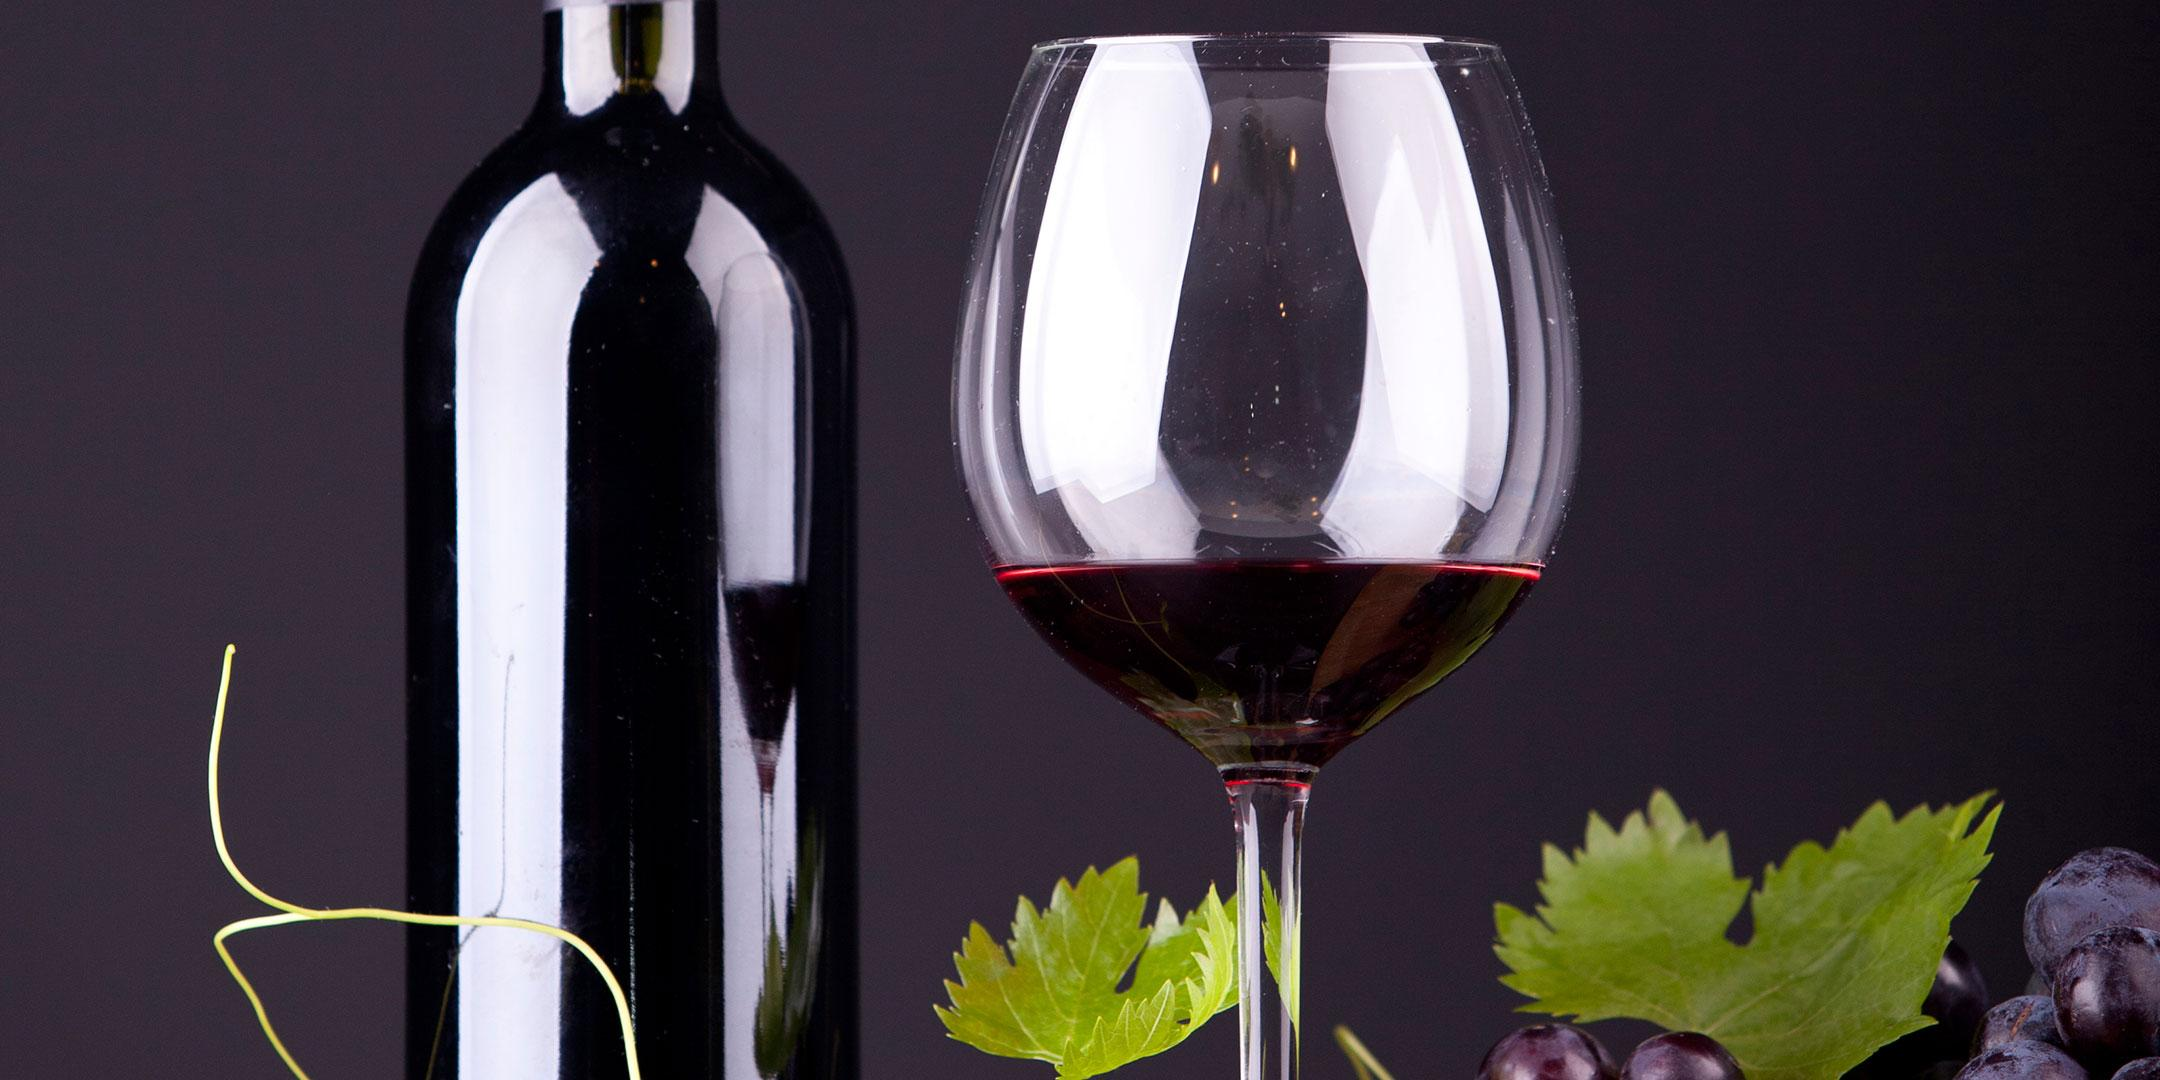 Intro to Winemaking 9/24. Intro to Winemaking 9/24